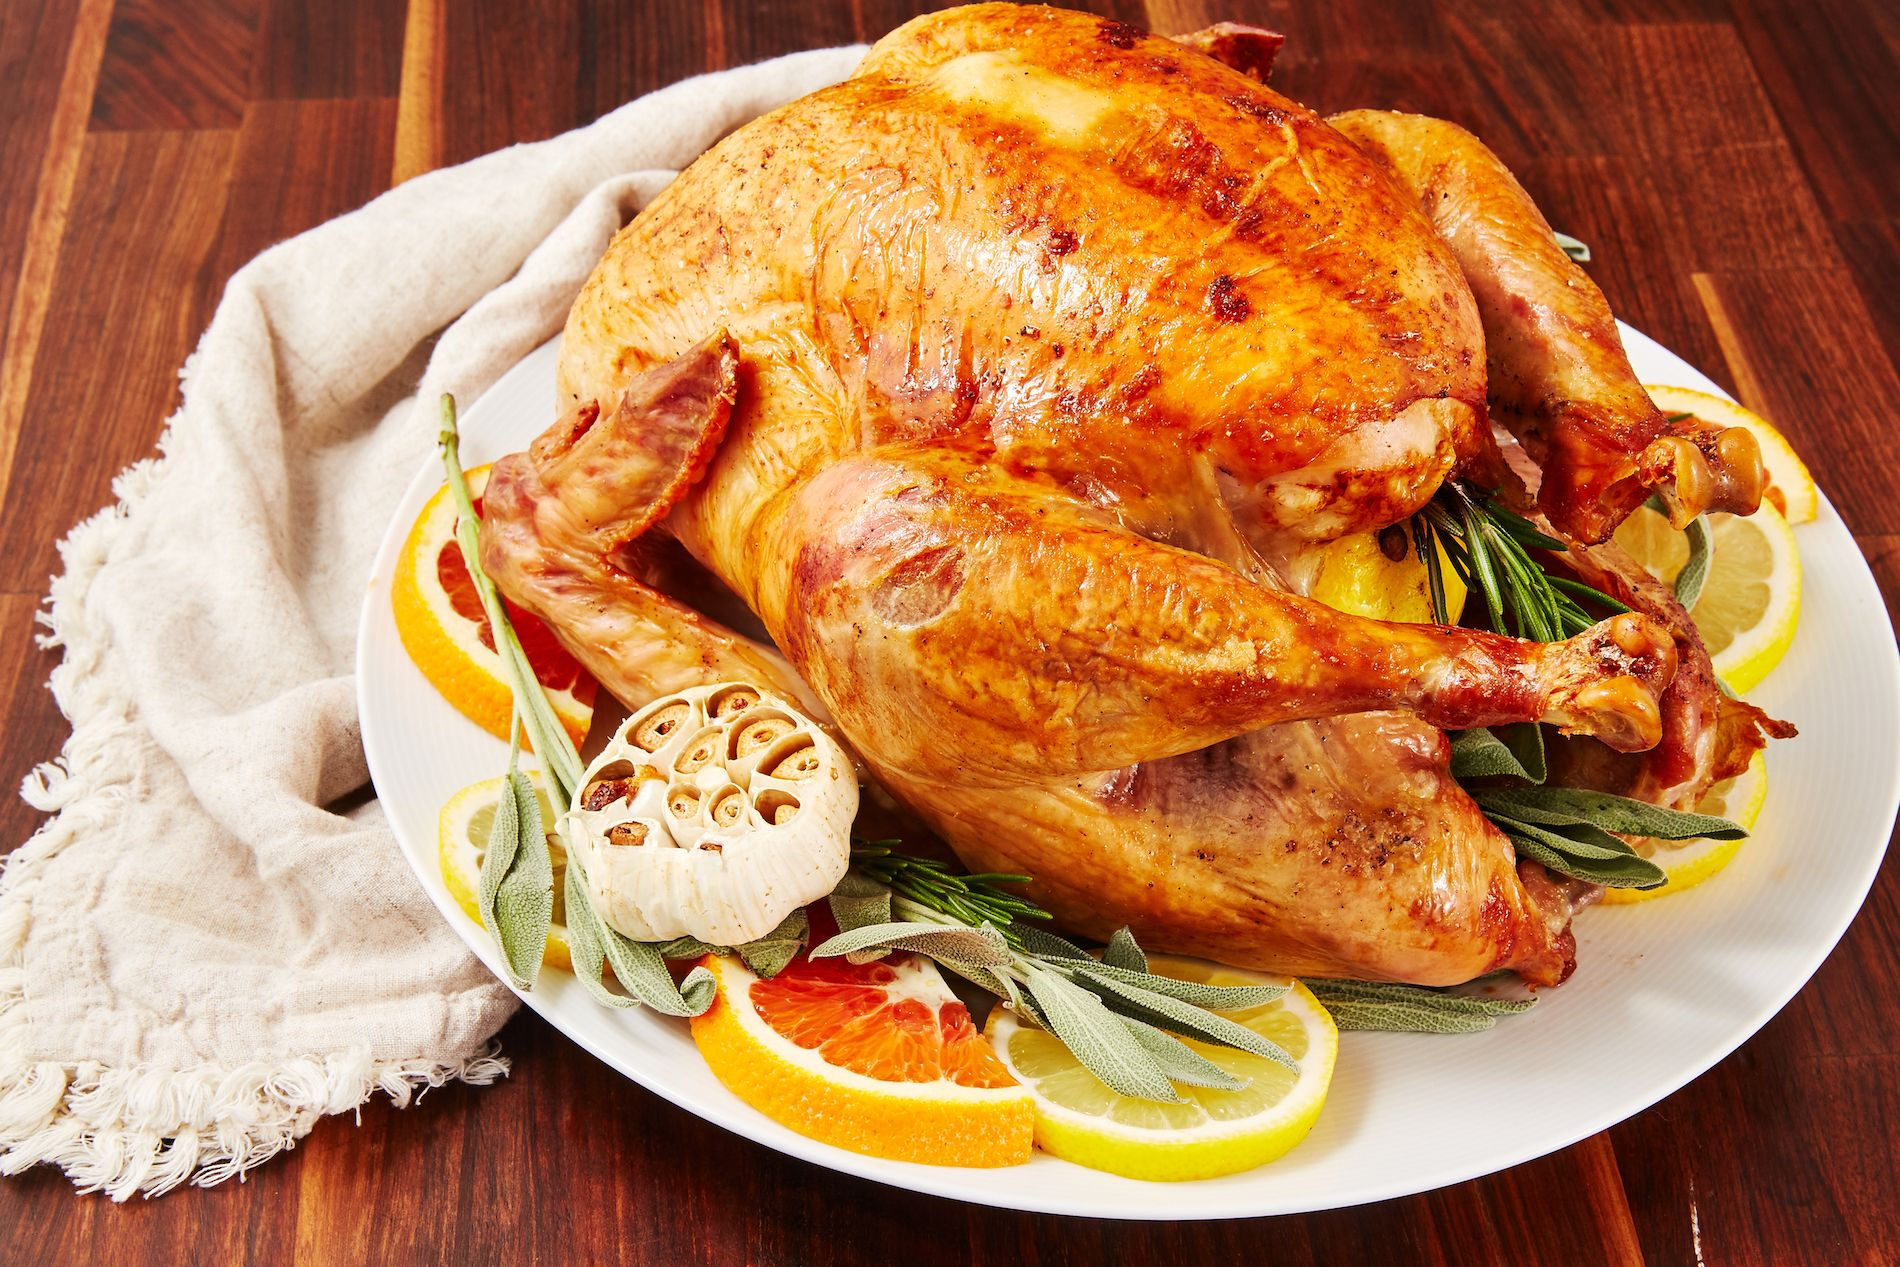 How Long Will It Take To Thaw Your Turkey?